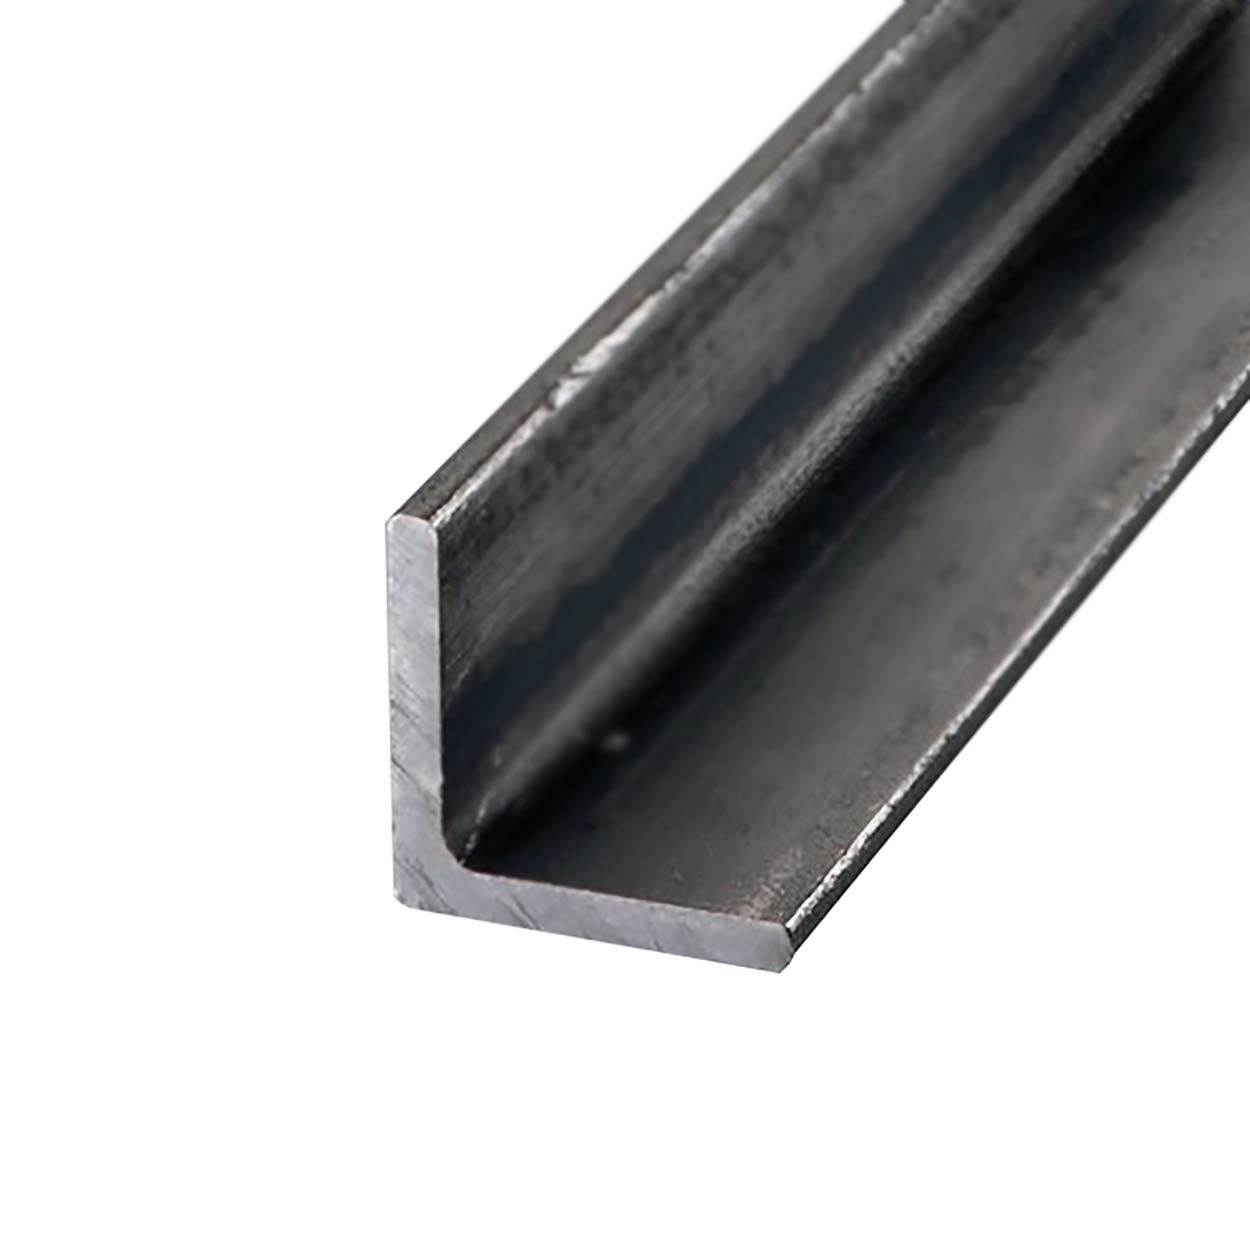 Online Metal Supply A36 Steel Angle, 2'' x 2'' x 3/8'' x 72 inches by Online Metal Supply